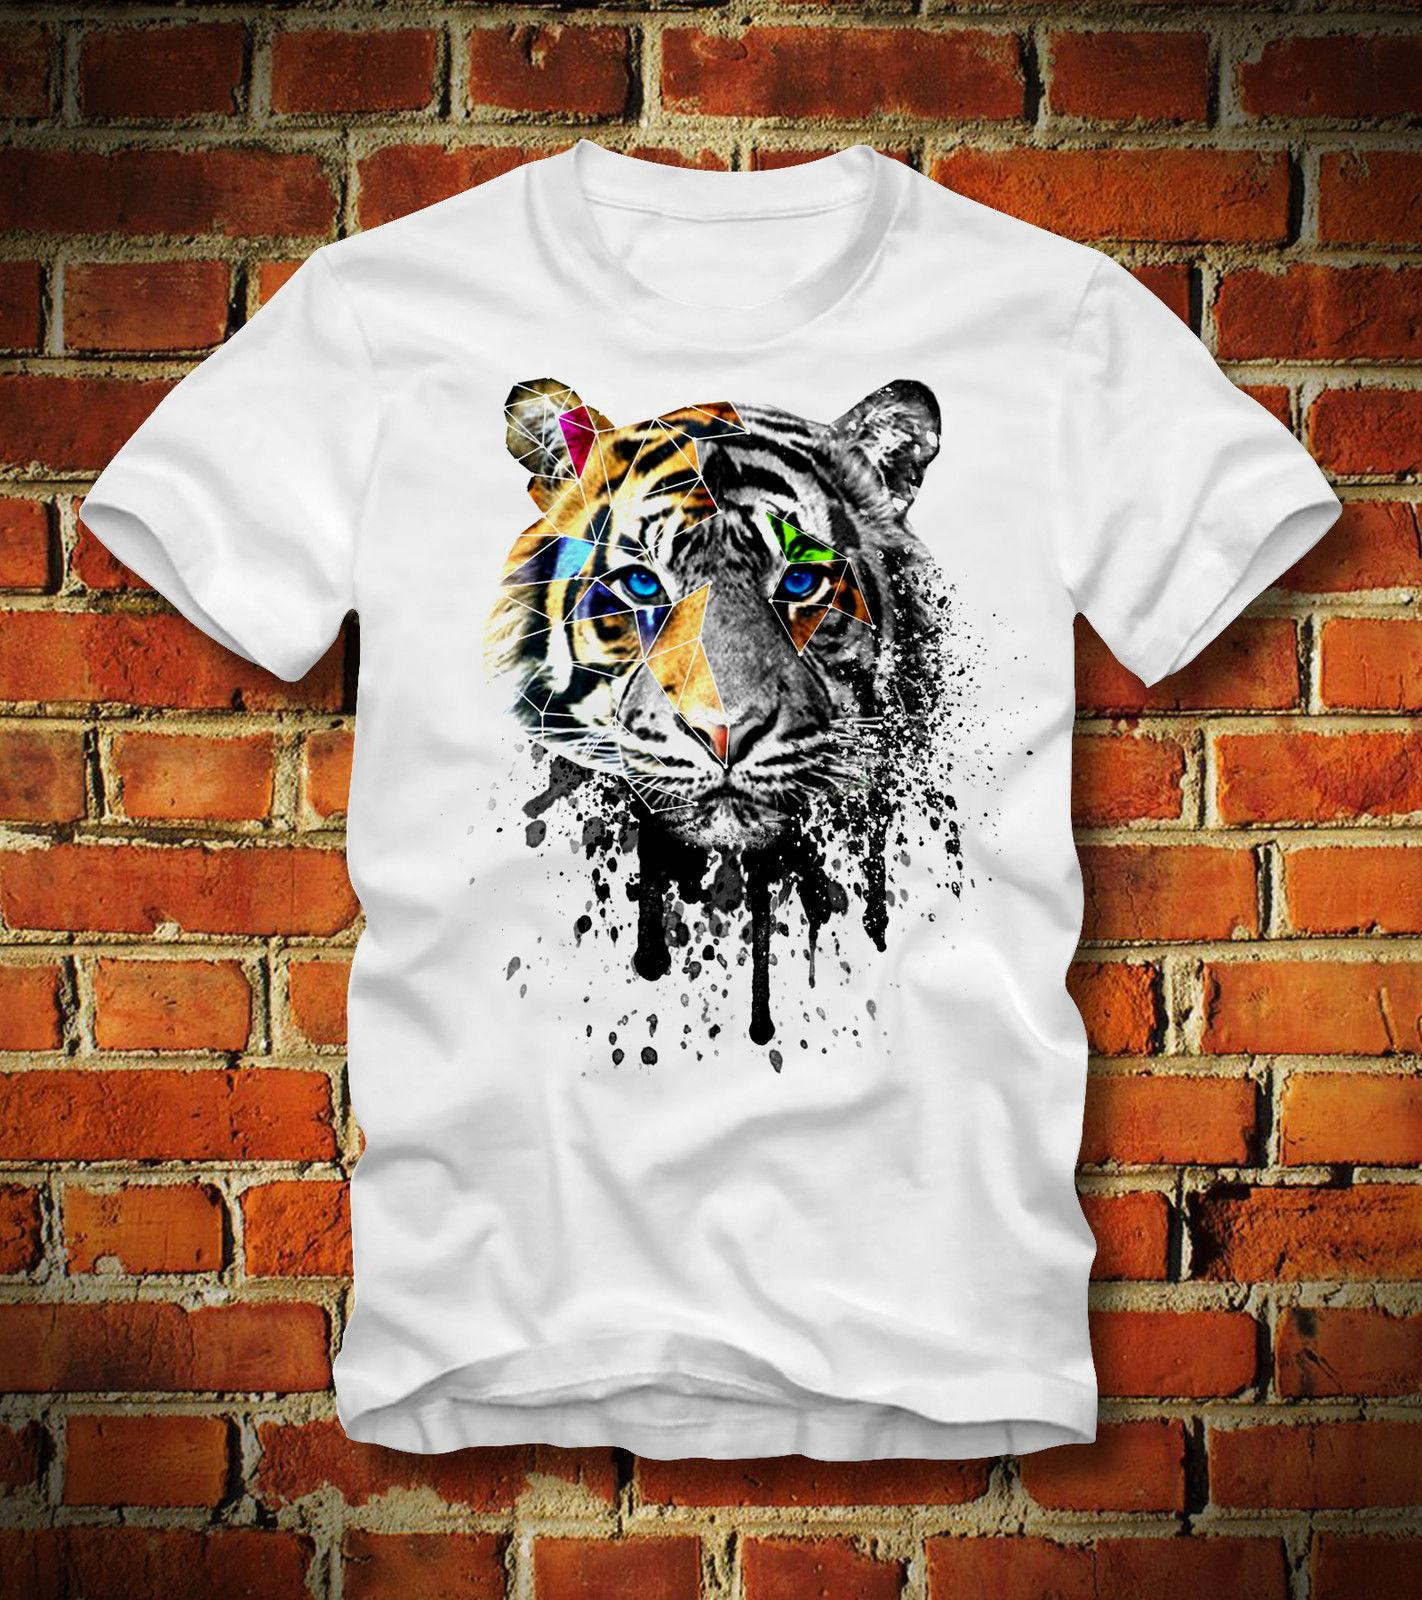 2019 New Summer Tee Shirt Funny T Shirt Tiger Geometric Psychedelic Psychedelisch Wholesale Discount Dmt Art Custom T Shirt